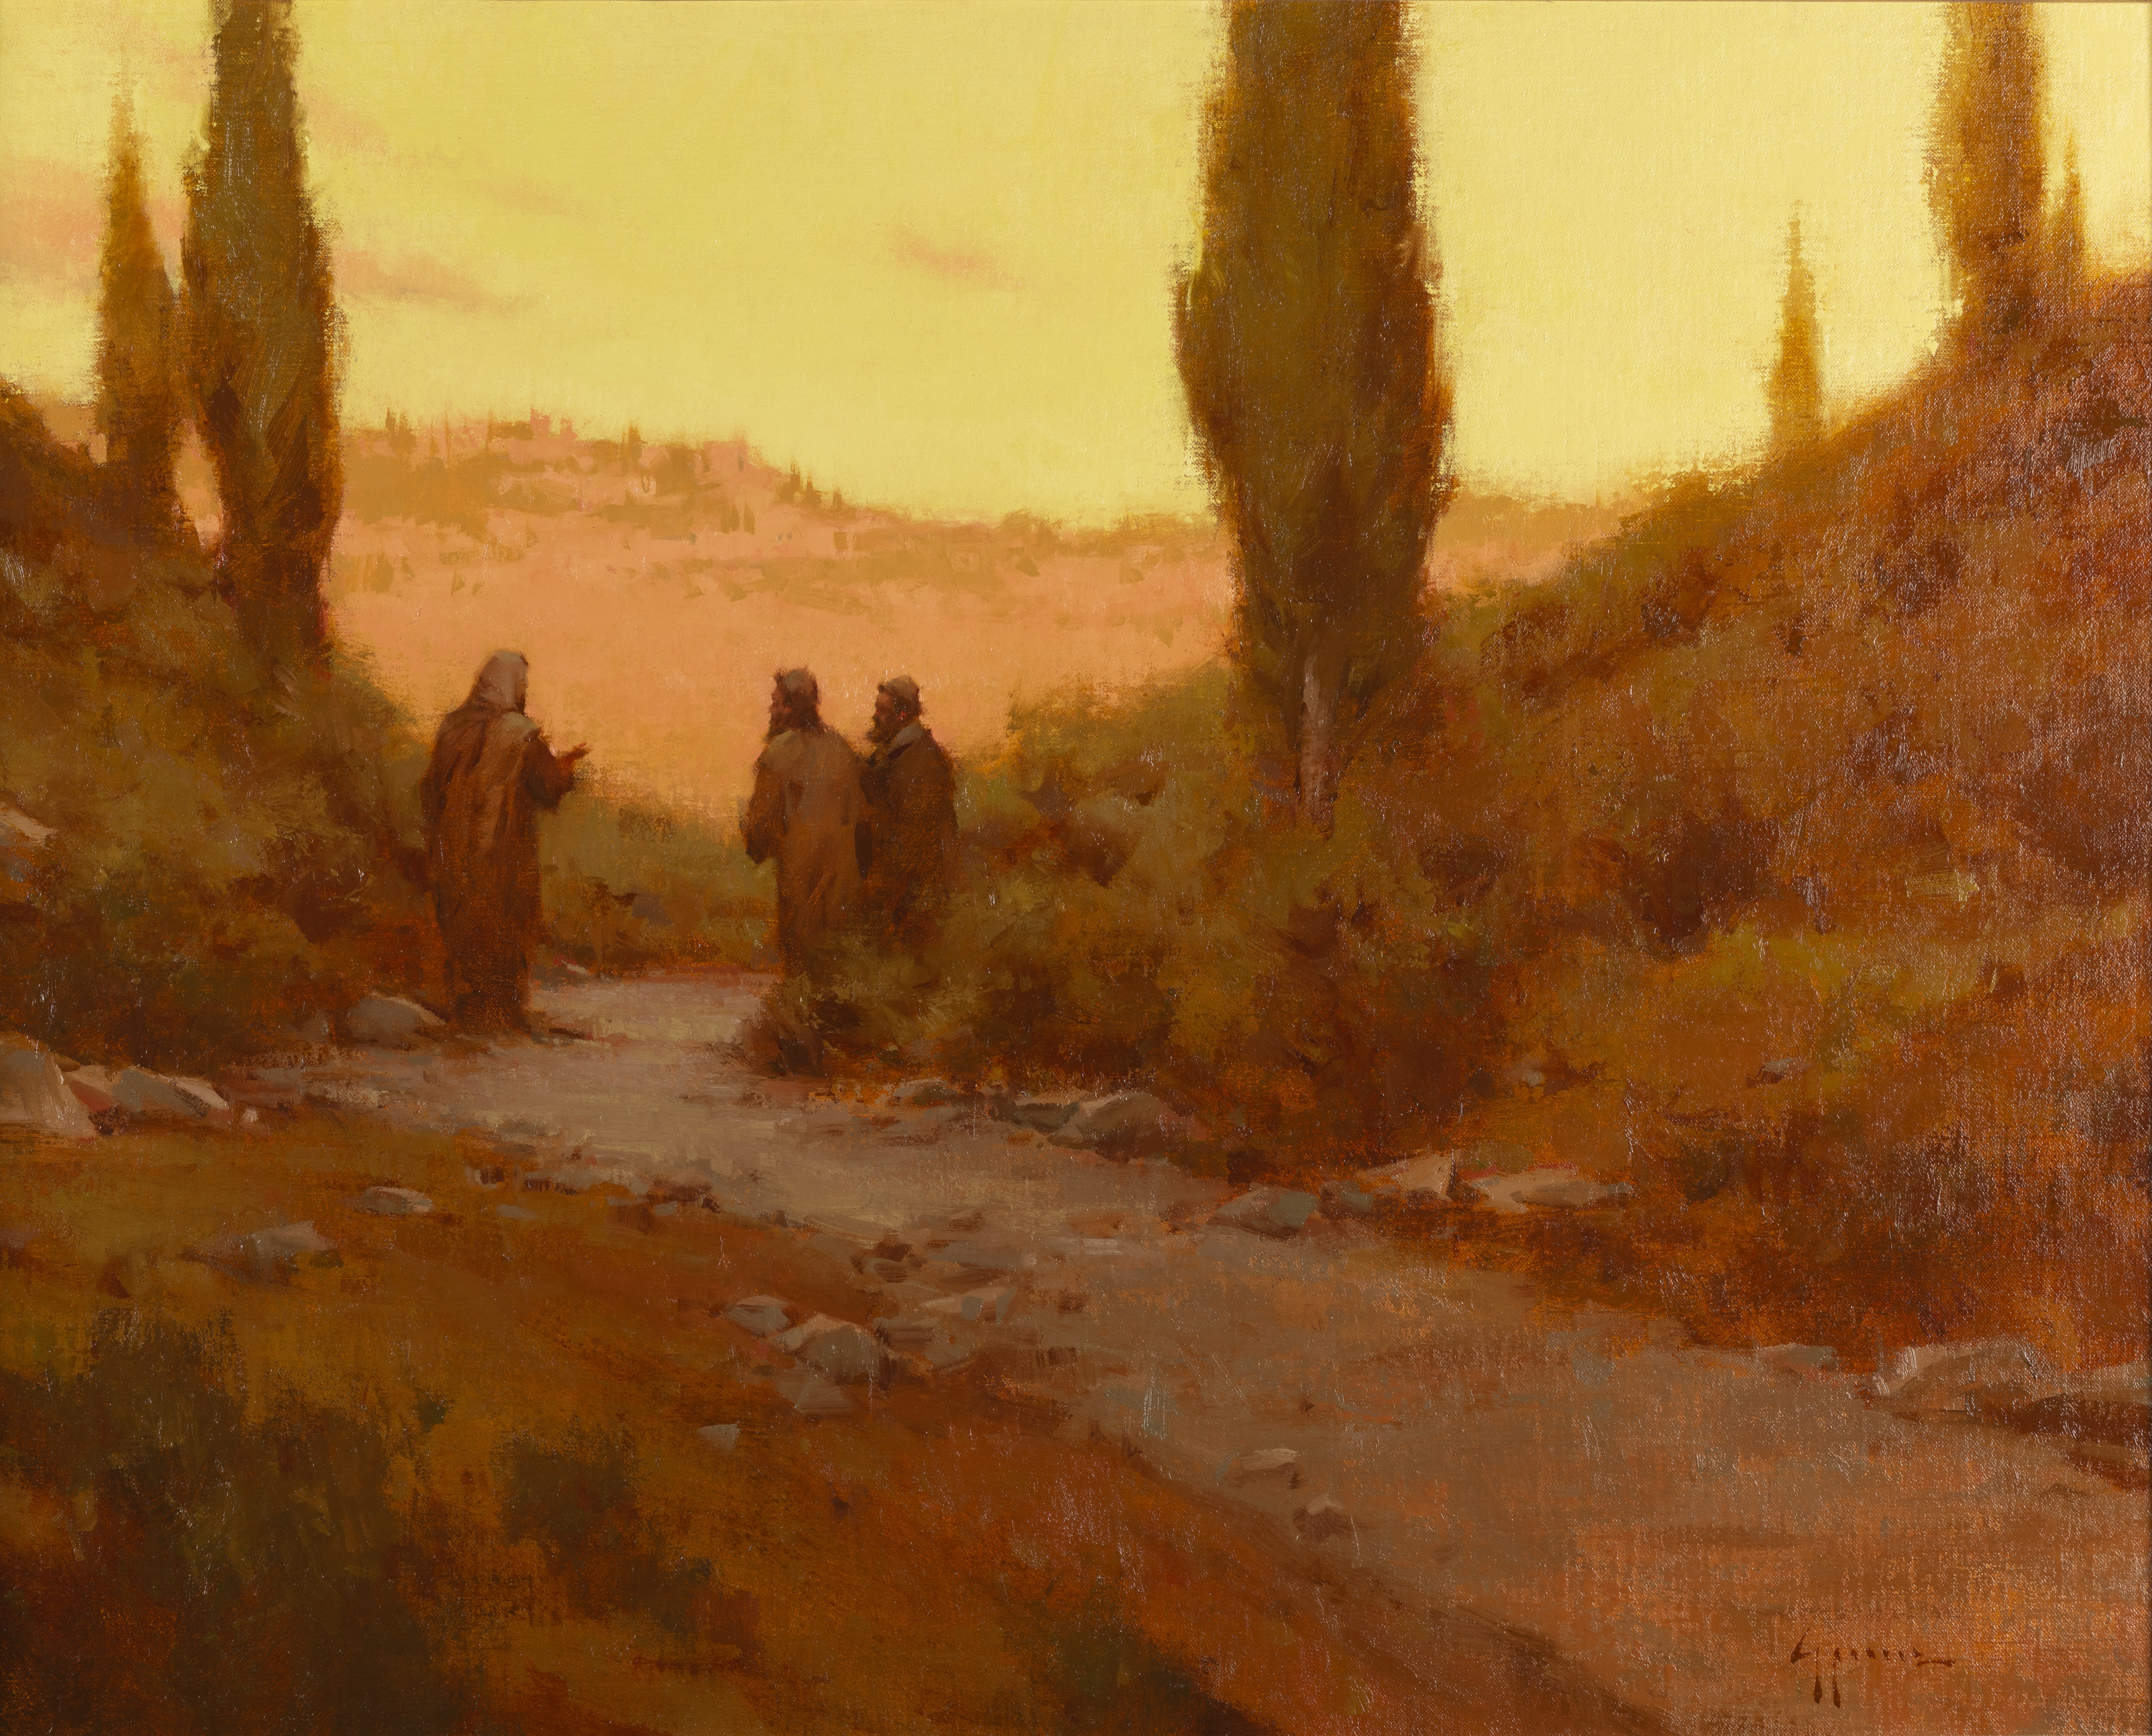 Oil painting depicting a moment from the life of the Savior is on display at the 11th International Art Competition.